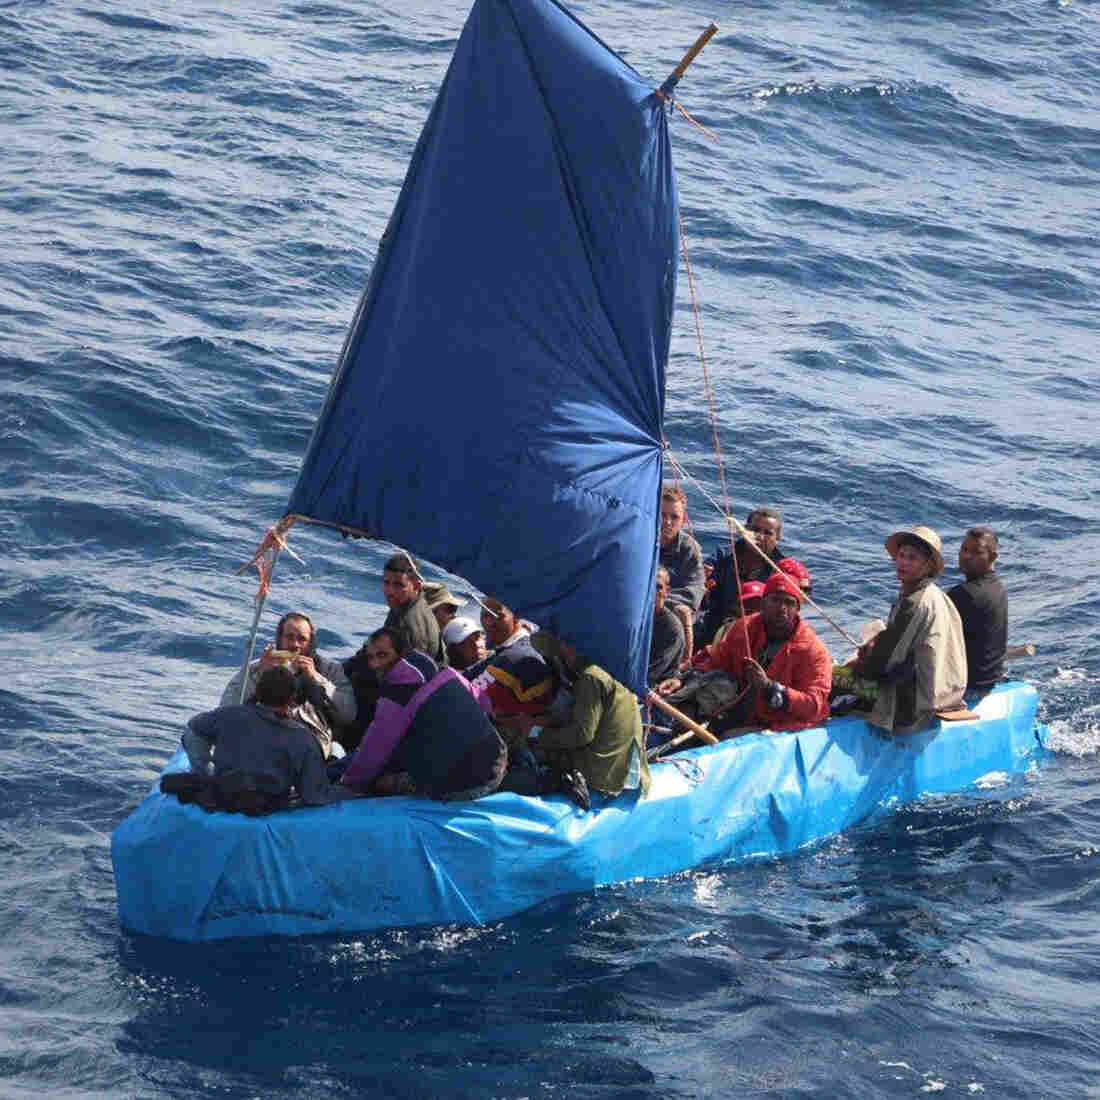 As Rumors Spread, More Cubans Try To Reach The U.S. By Sea